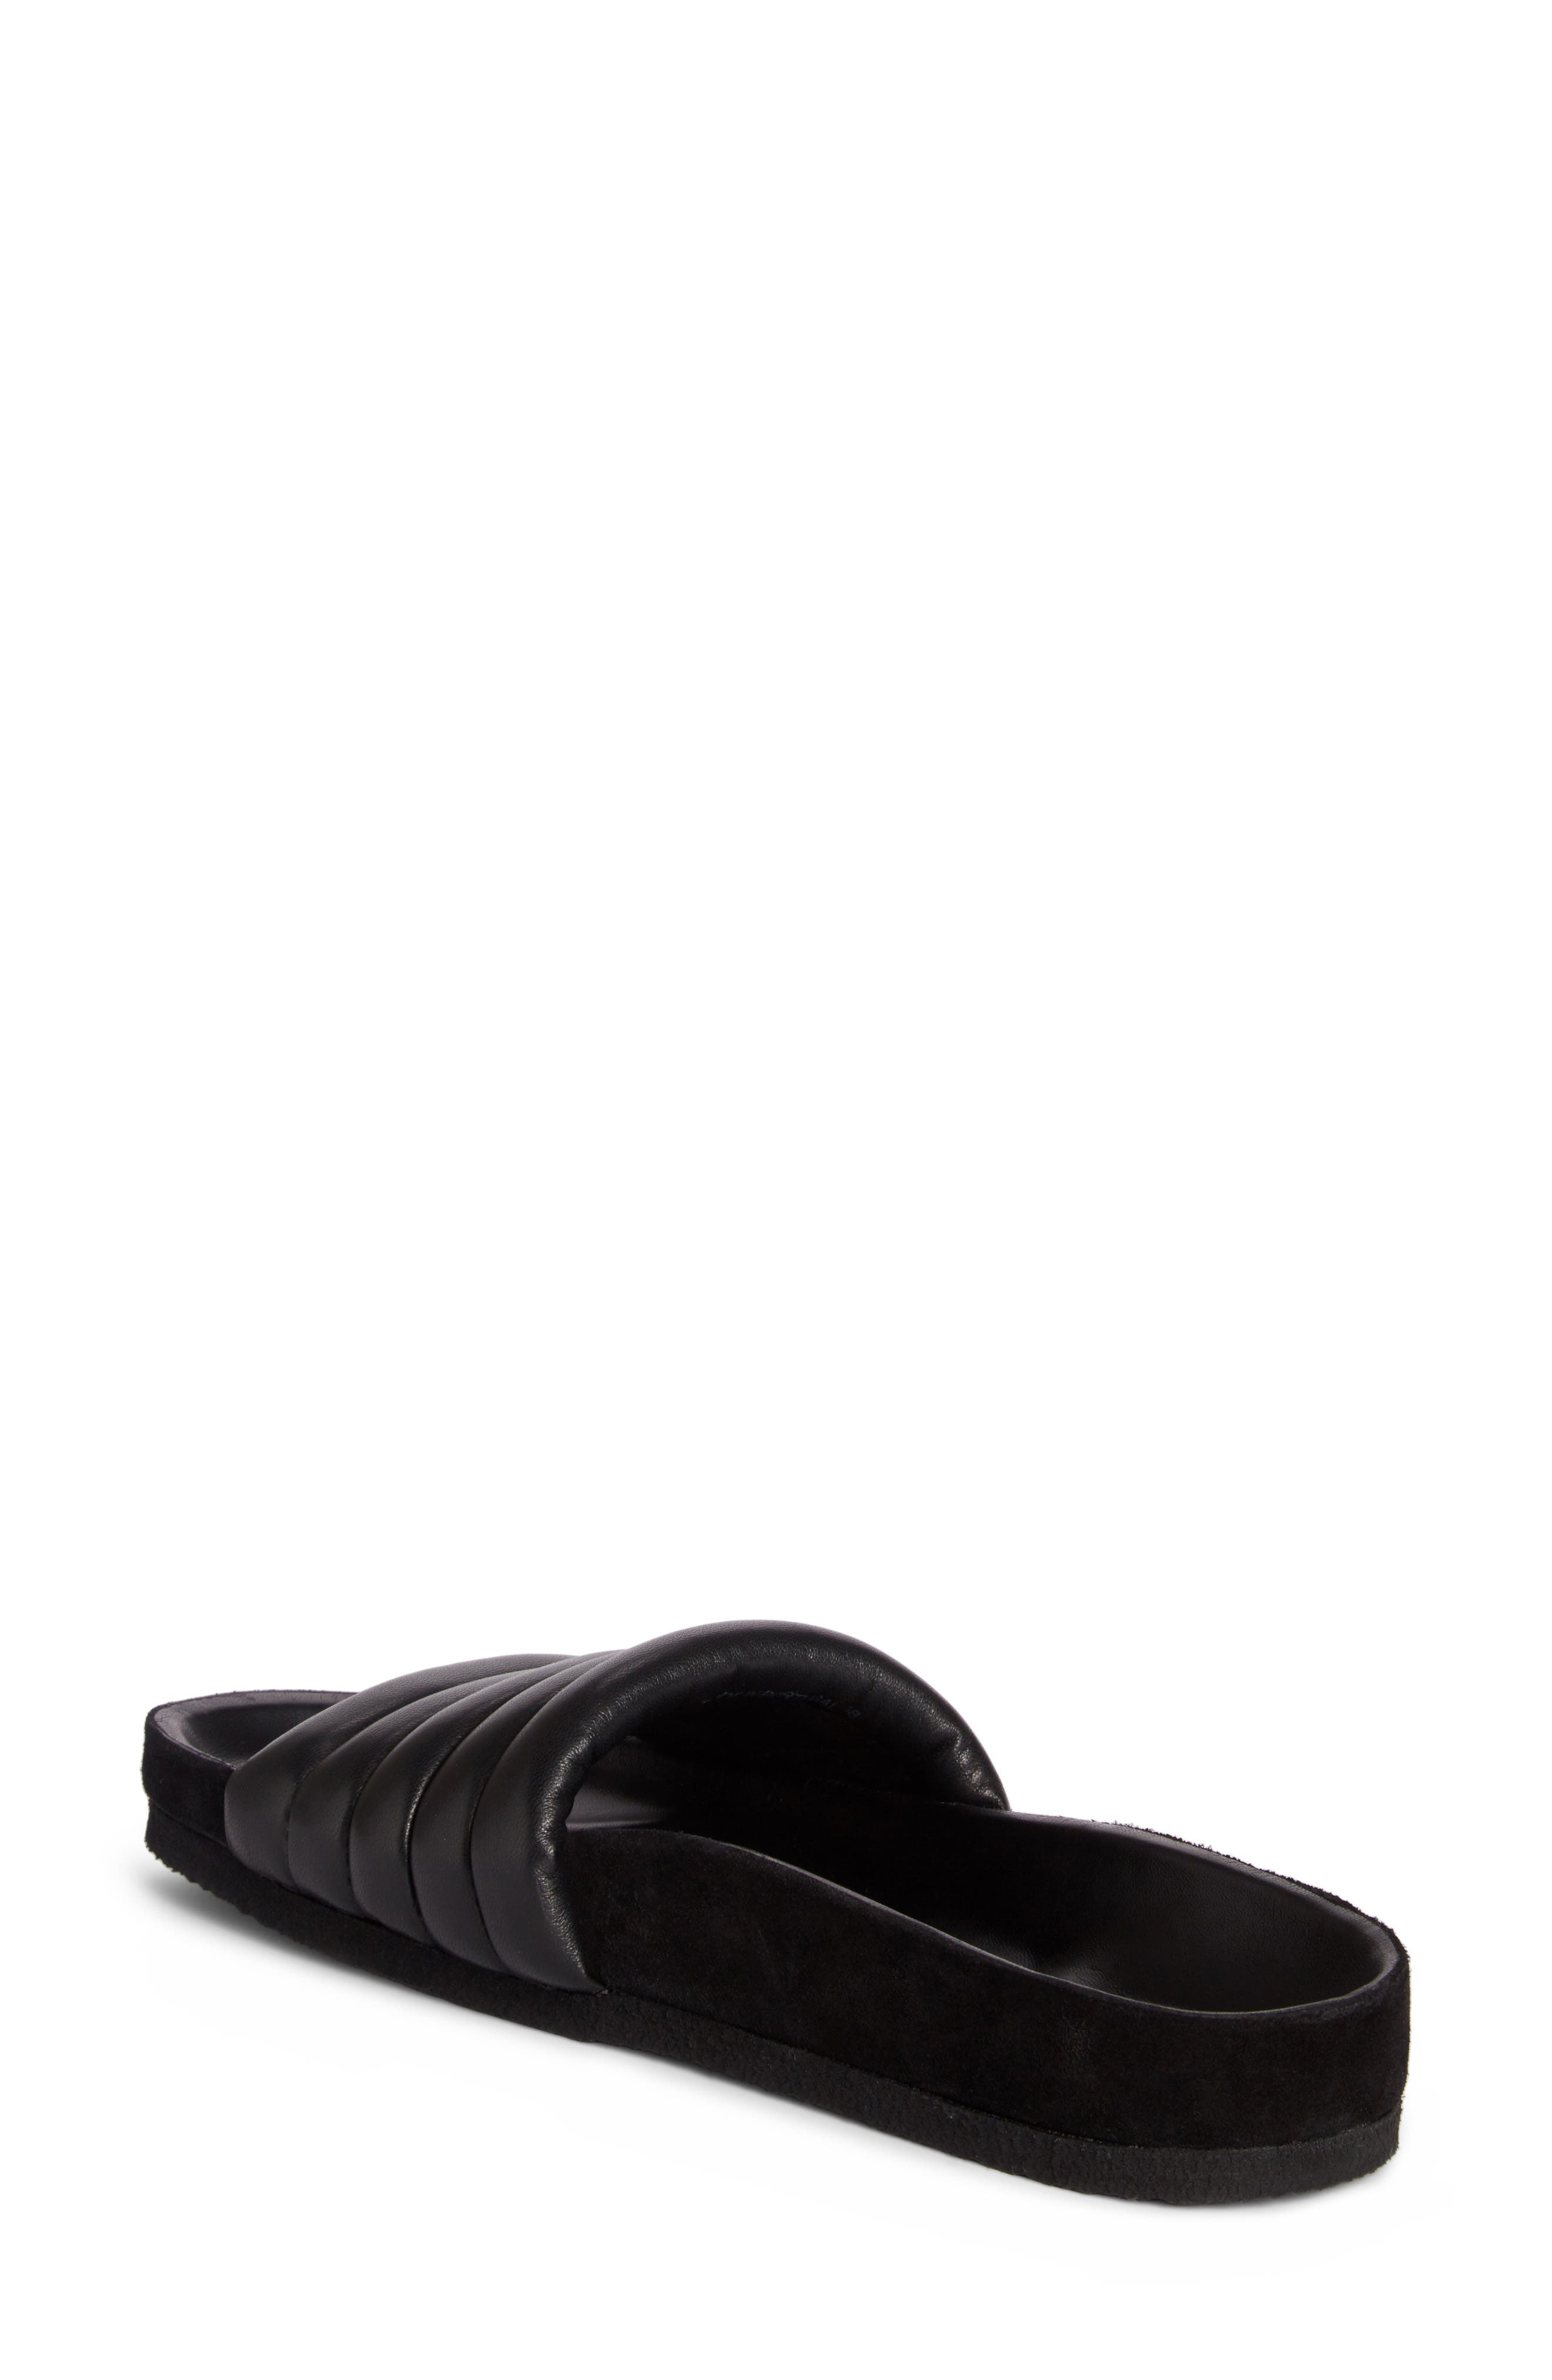 Hellea Slide Sandal,                             Alternate thumbnail 2, color,                             BLACK